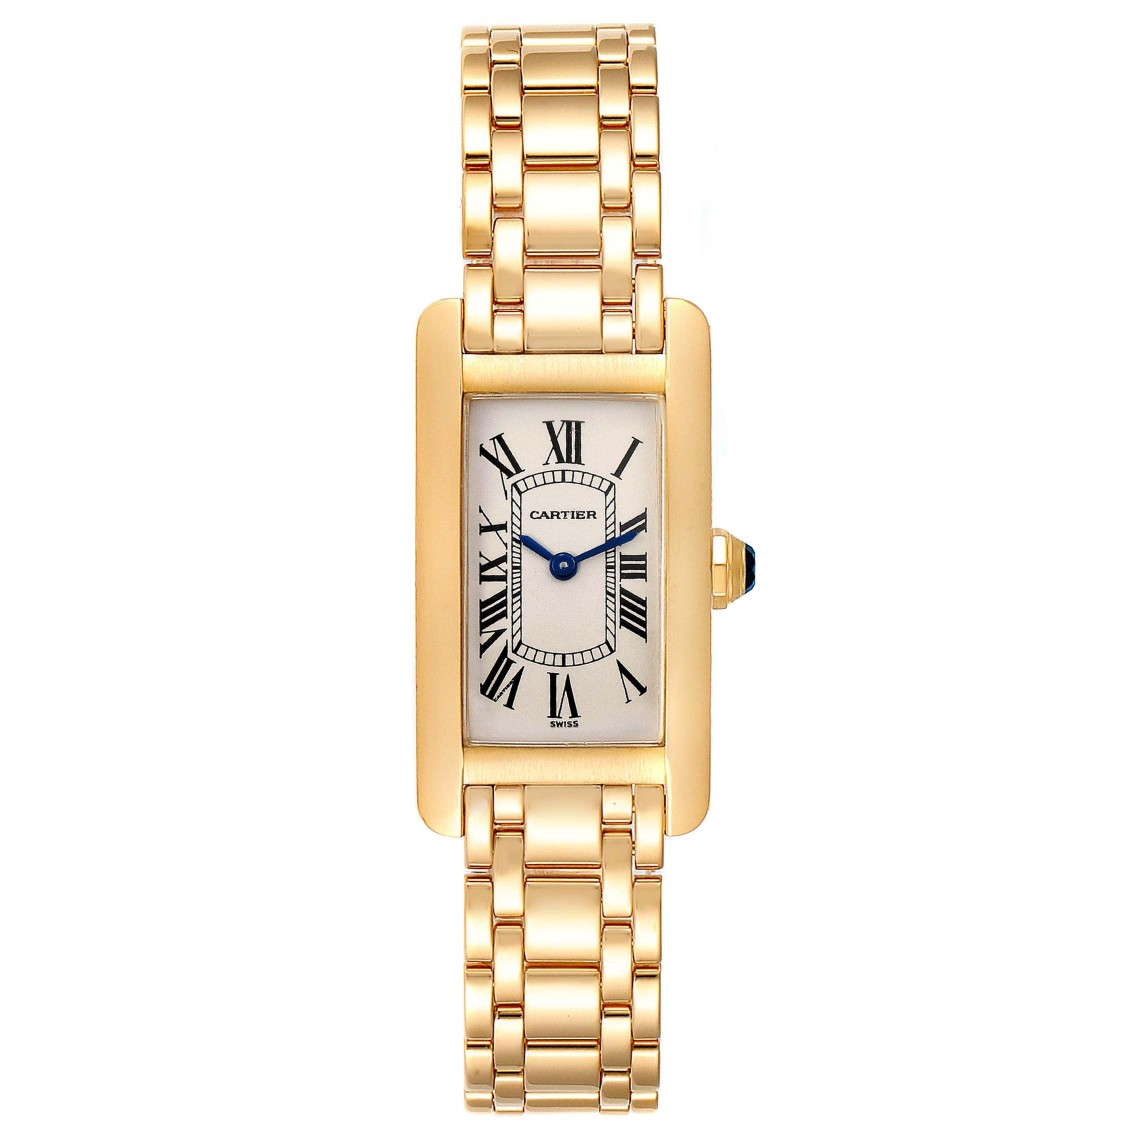 CARTIER TANK AMERICAINE 18K YELLOW GOLD LADIES WATCH W26015K2